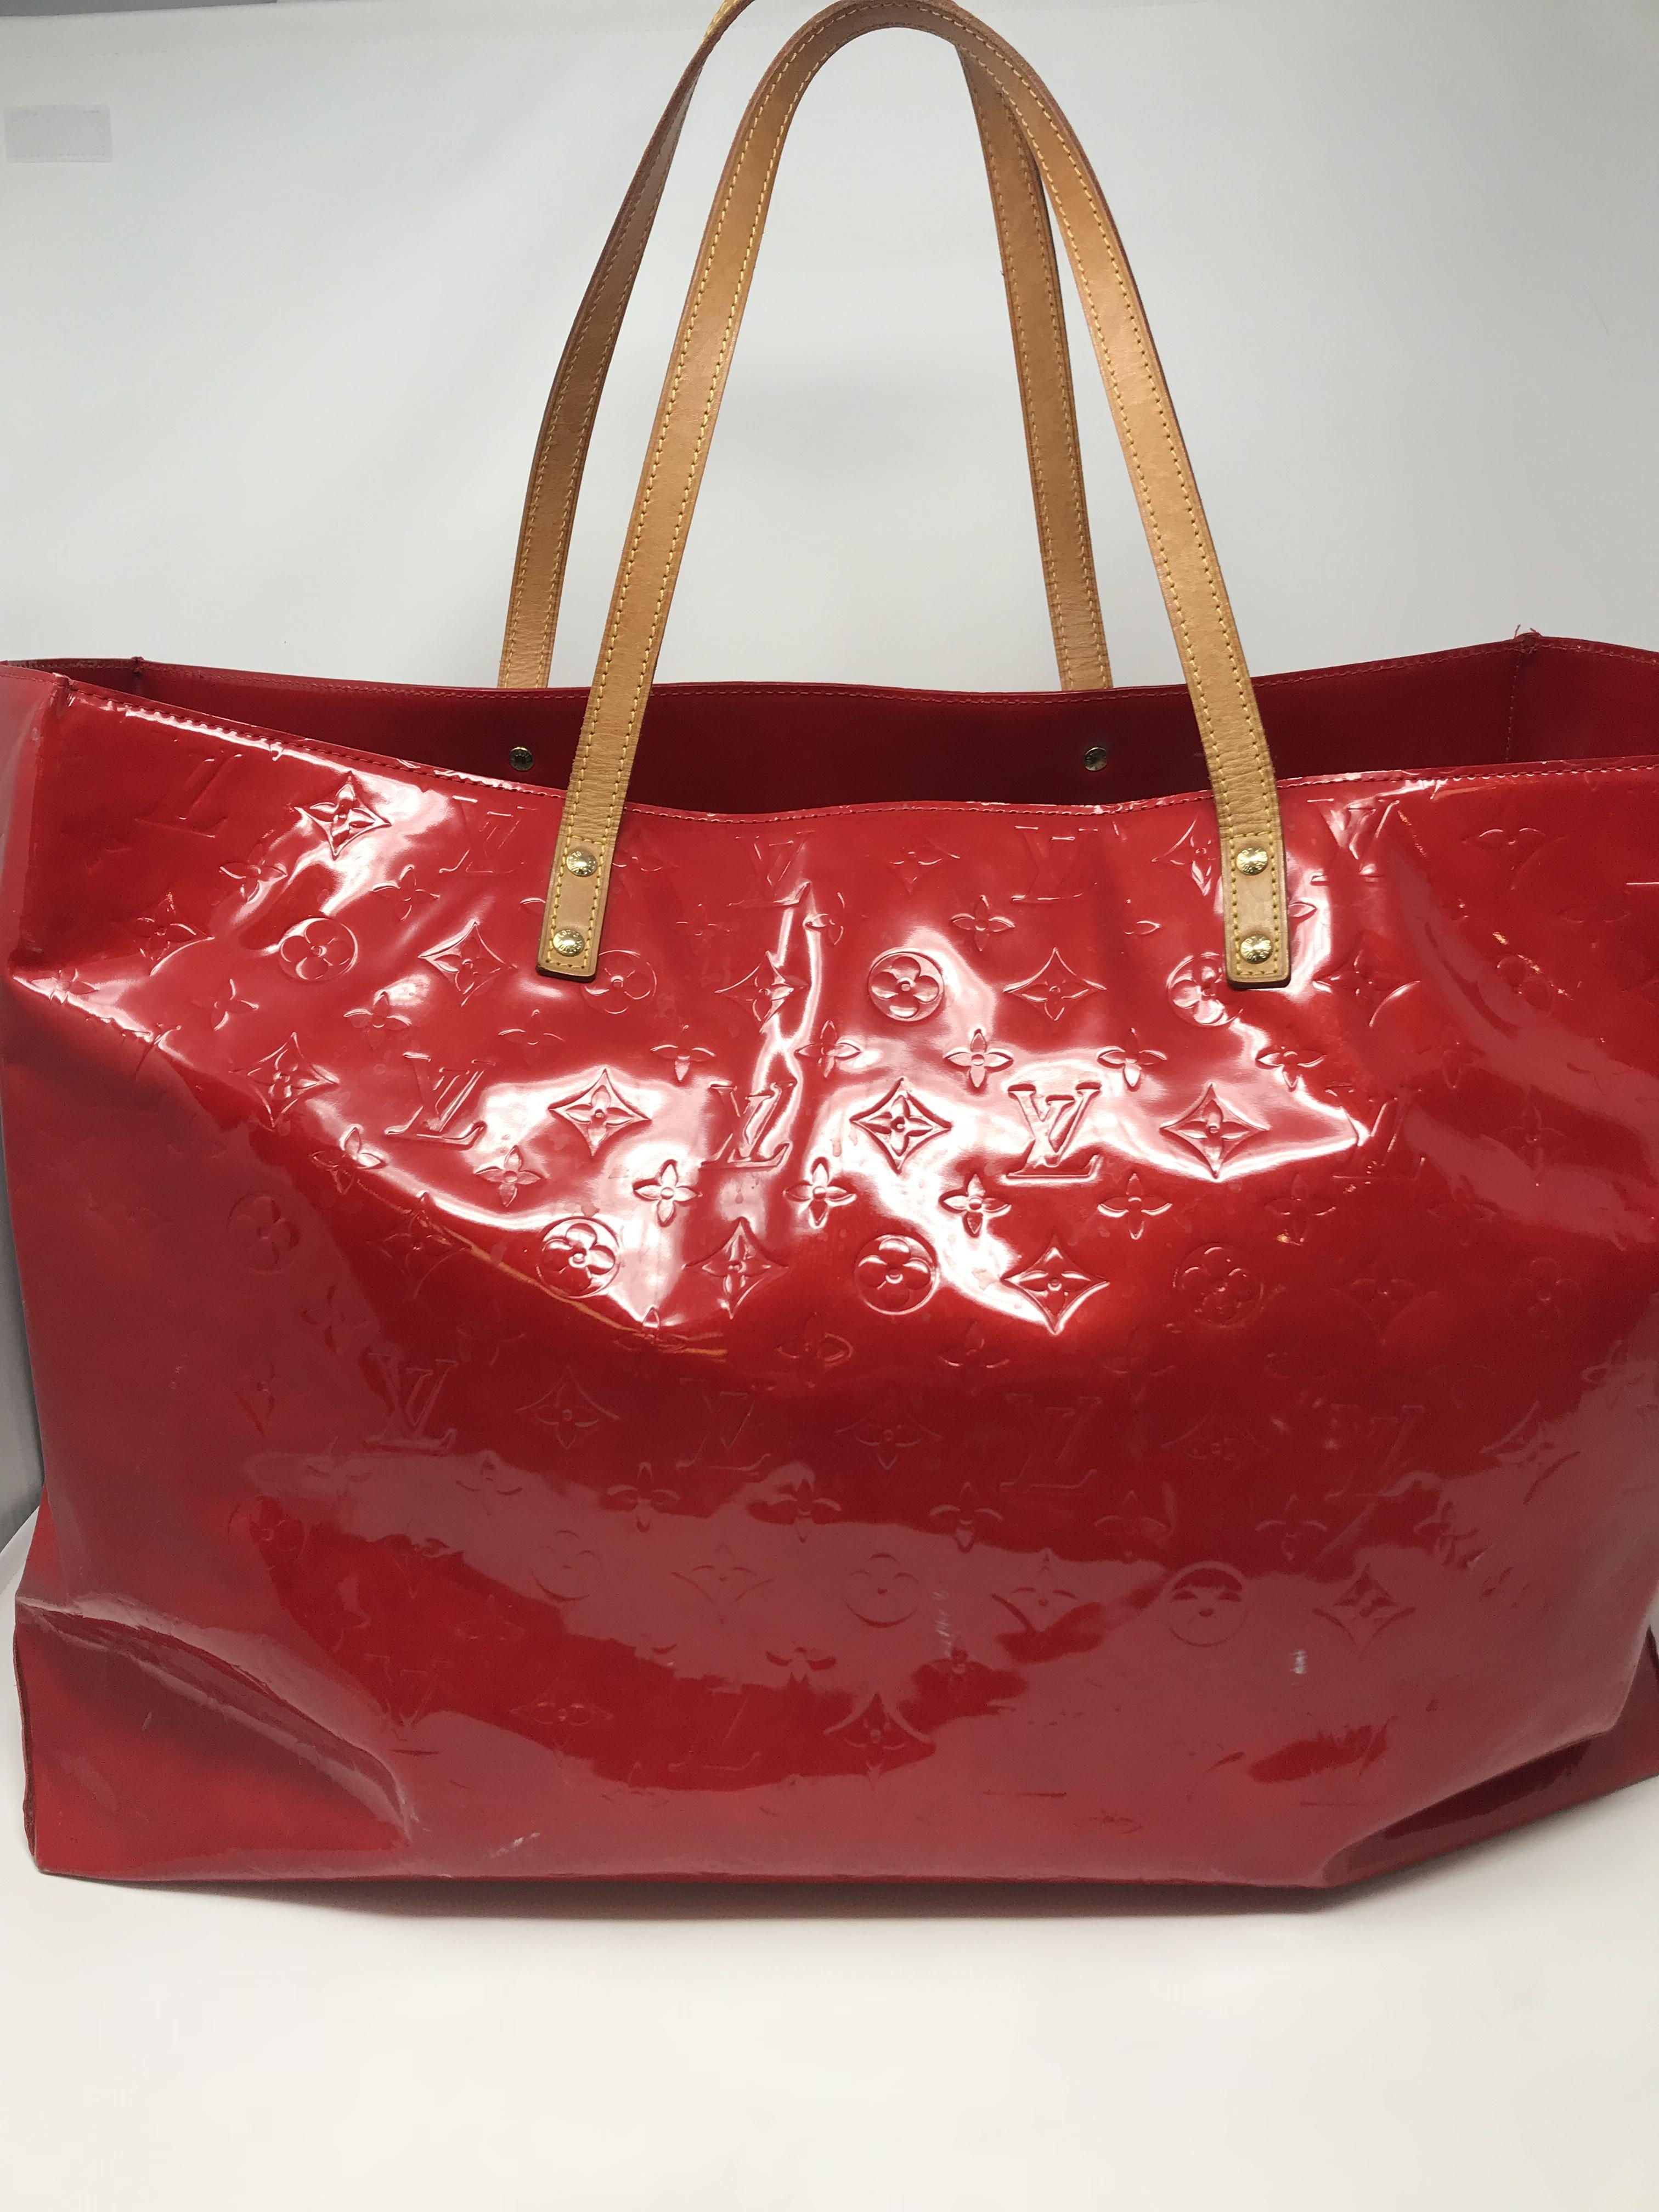 Louis Vuitton red Purses, Handbags Price: $696.99